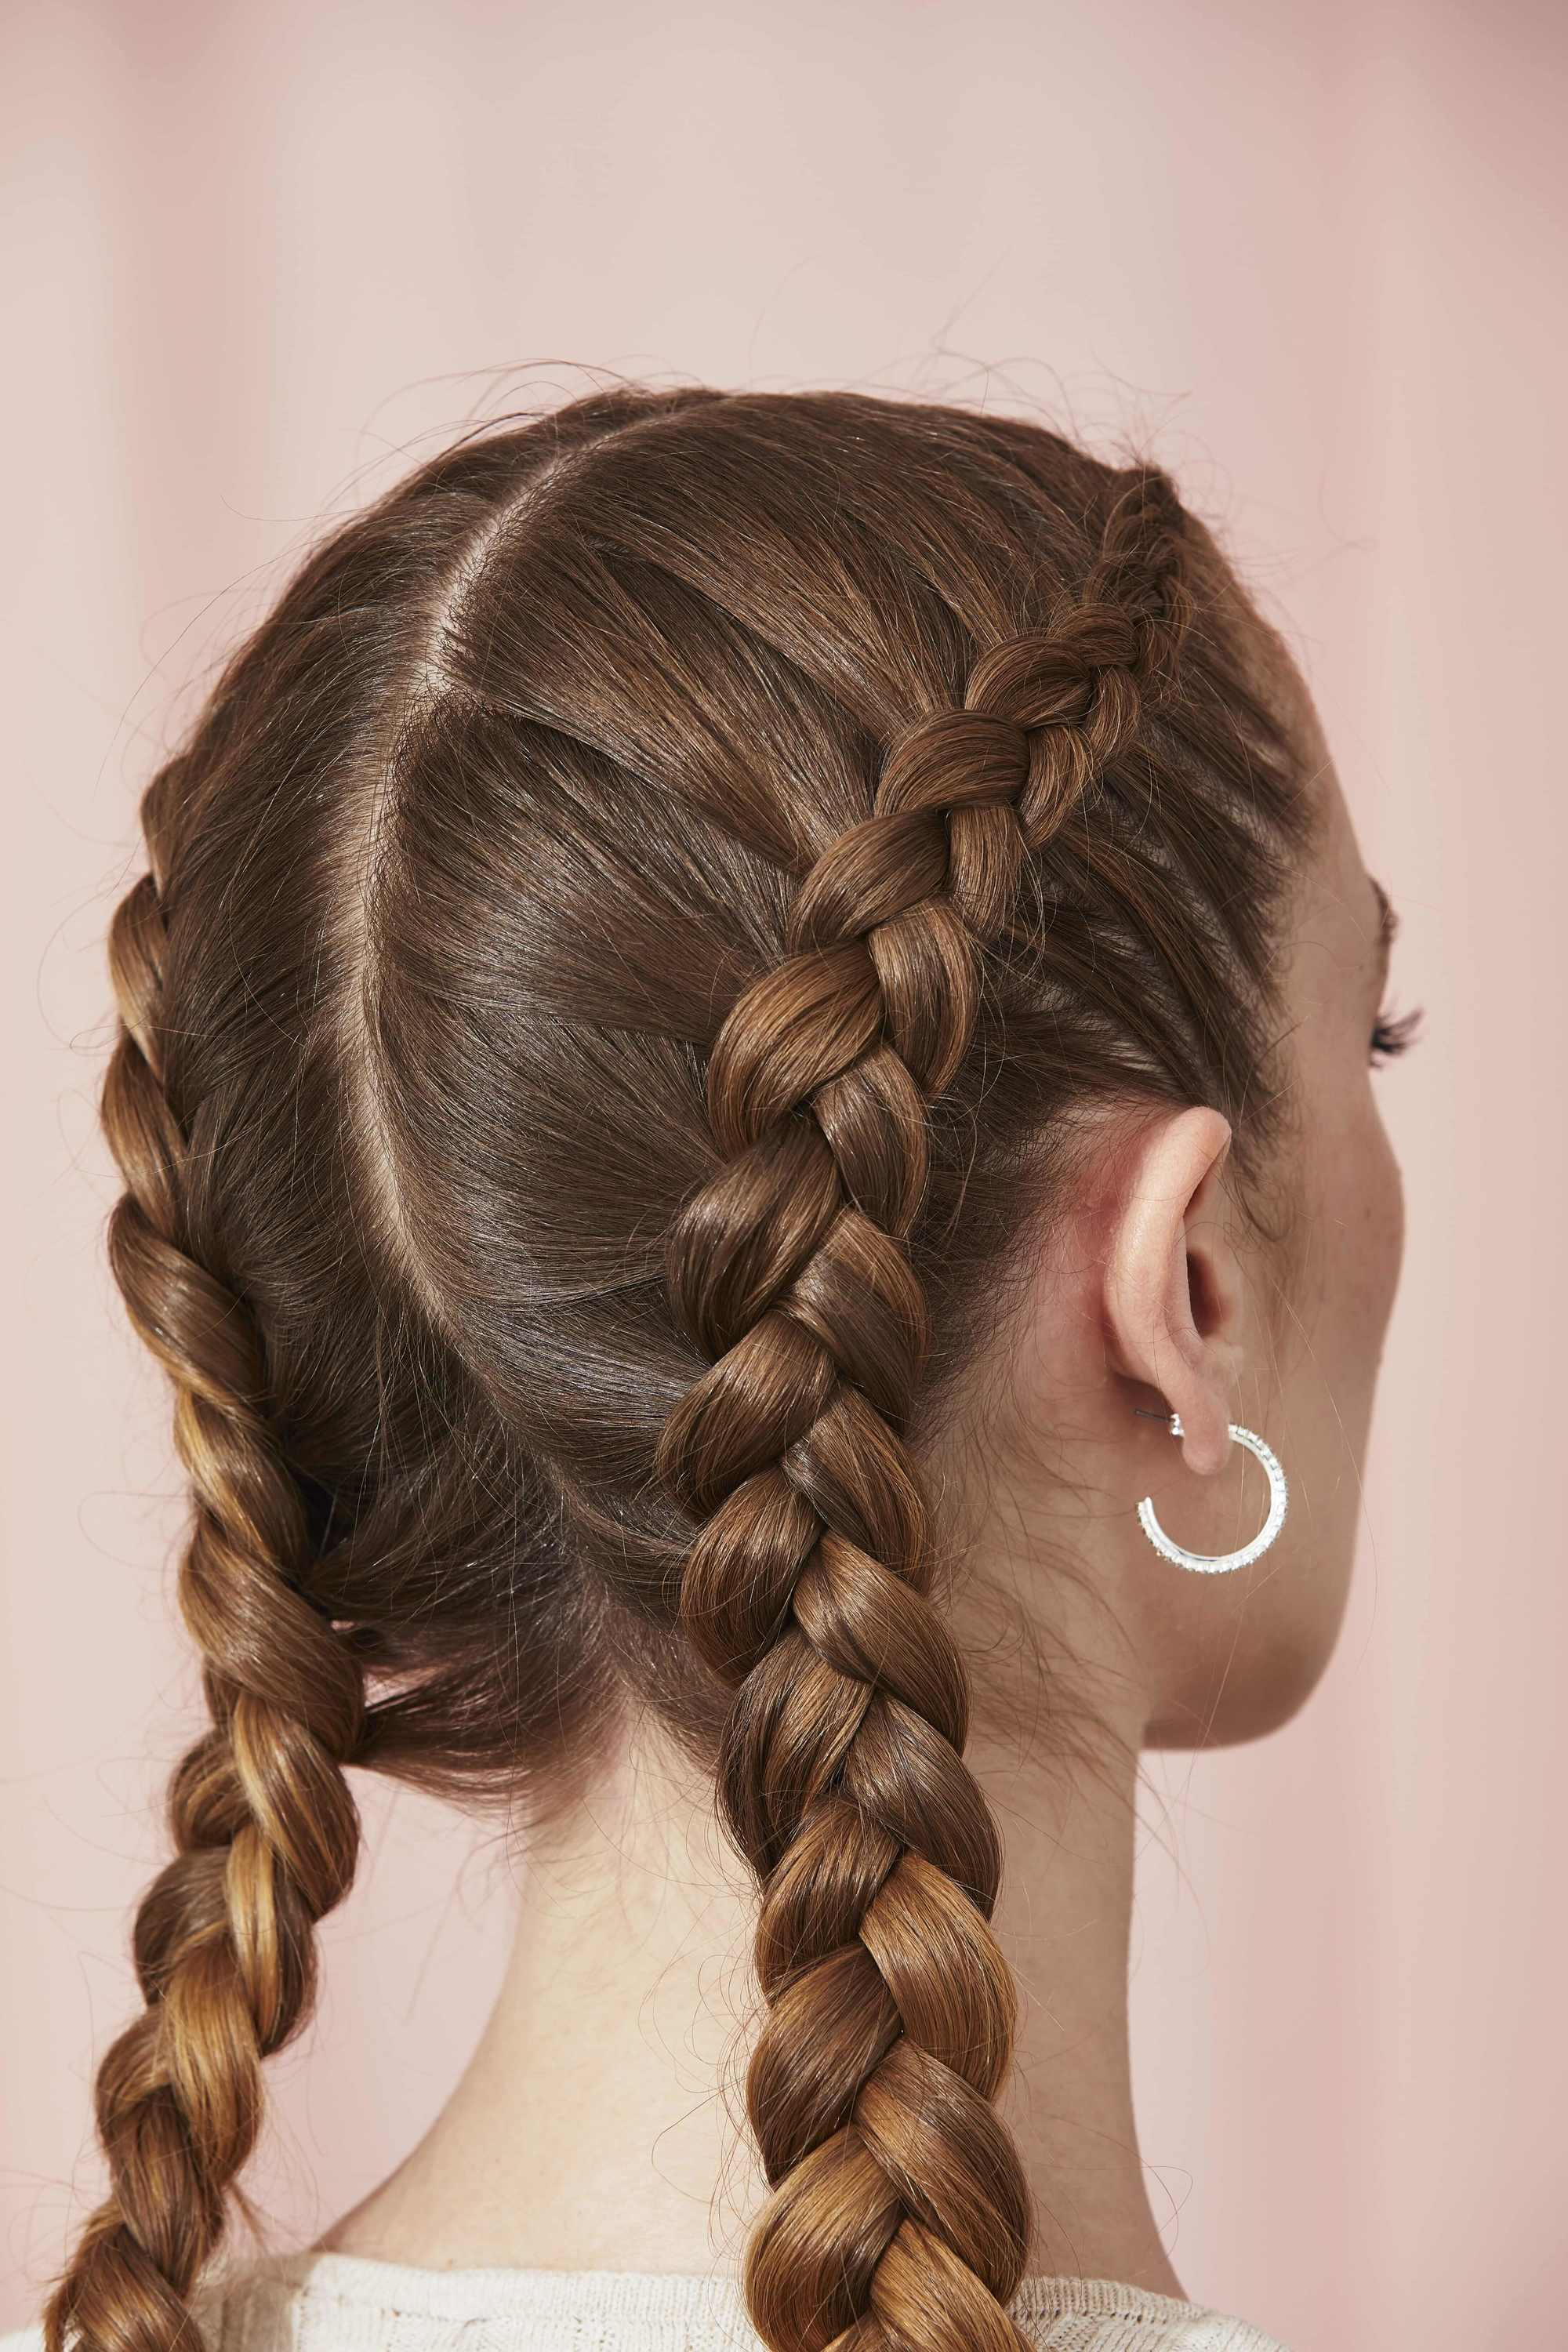 12 Easy Hairstyles for Greasy Hair You Can Wear At Home